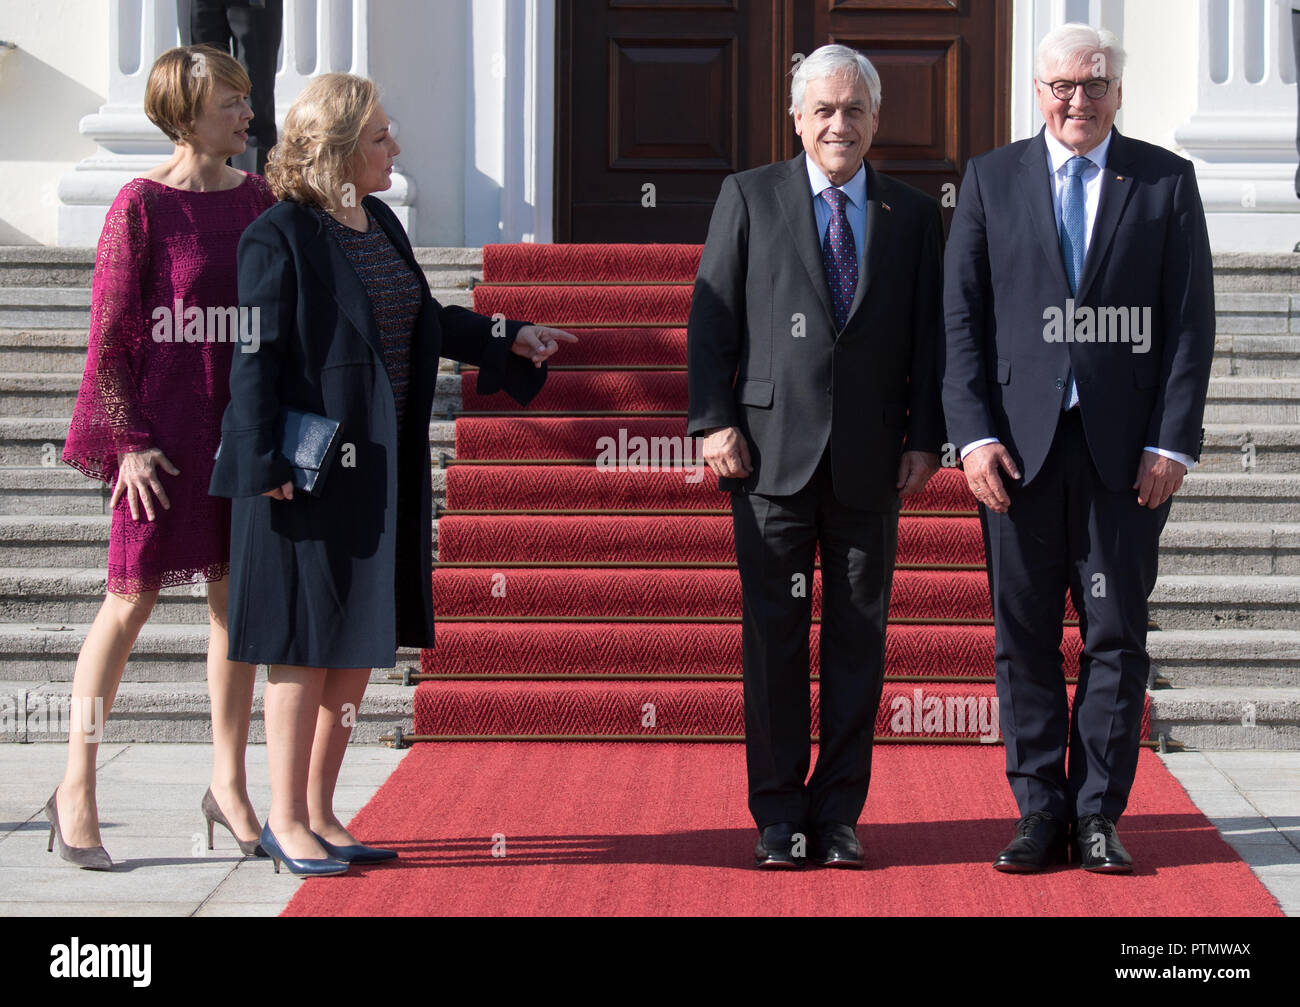 10 October 2018, Berlin: Federal President Frank-Walter Steinmeier (r-l), Sebastian Pinera, President of Chile, the wife of the Chilean President, Cecilia Morel, and Elke Büdenbender, wife of the Federal President, are standing in front of Bellevue Castle during the welcoming address. Photo: Ralf Hirschberger/dpa-Zentralbild/dpa Stock Photo